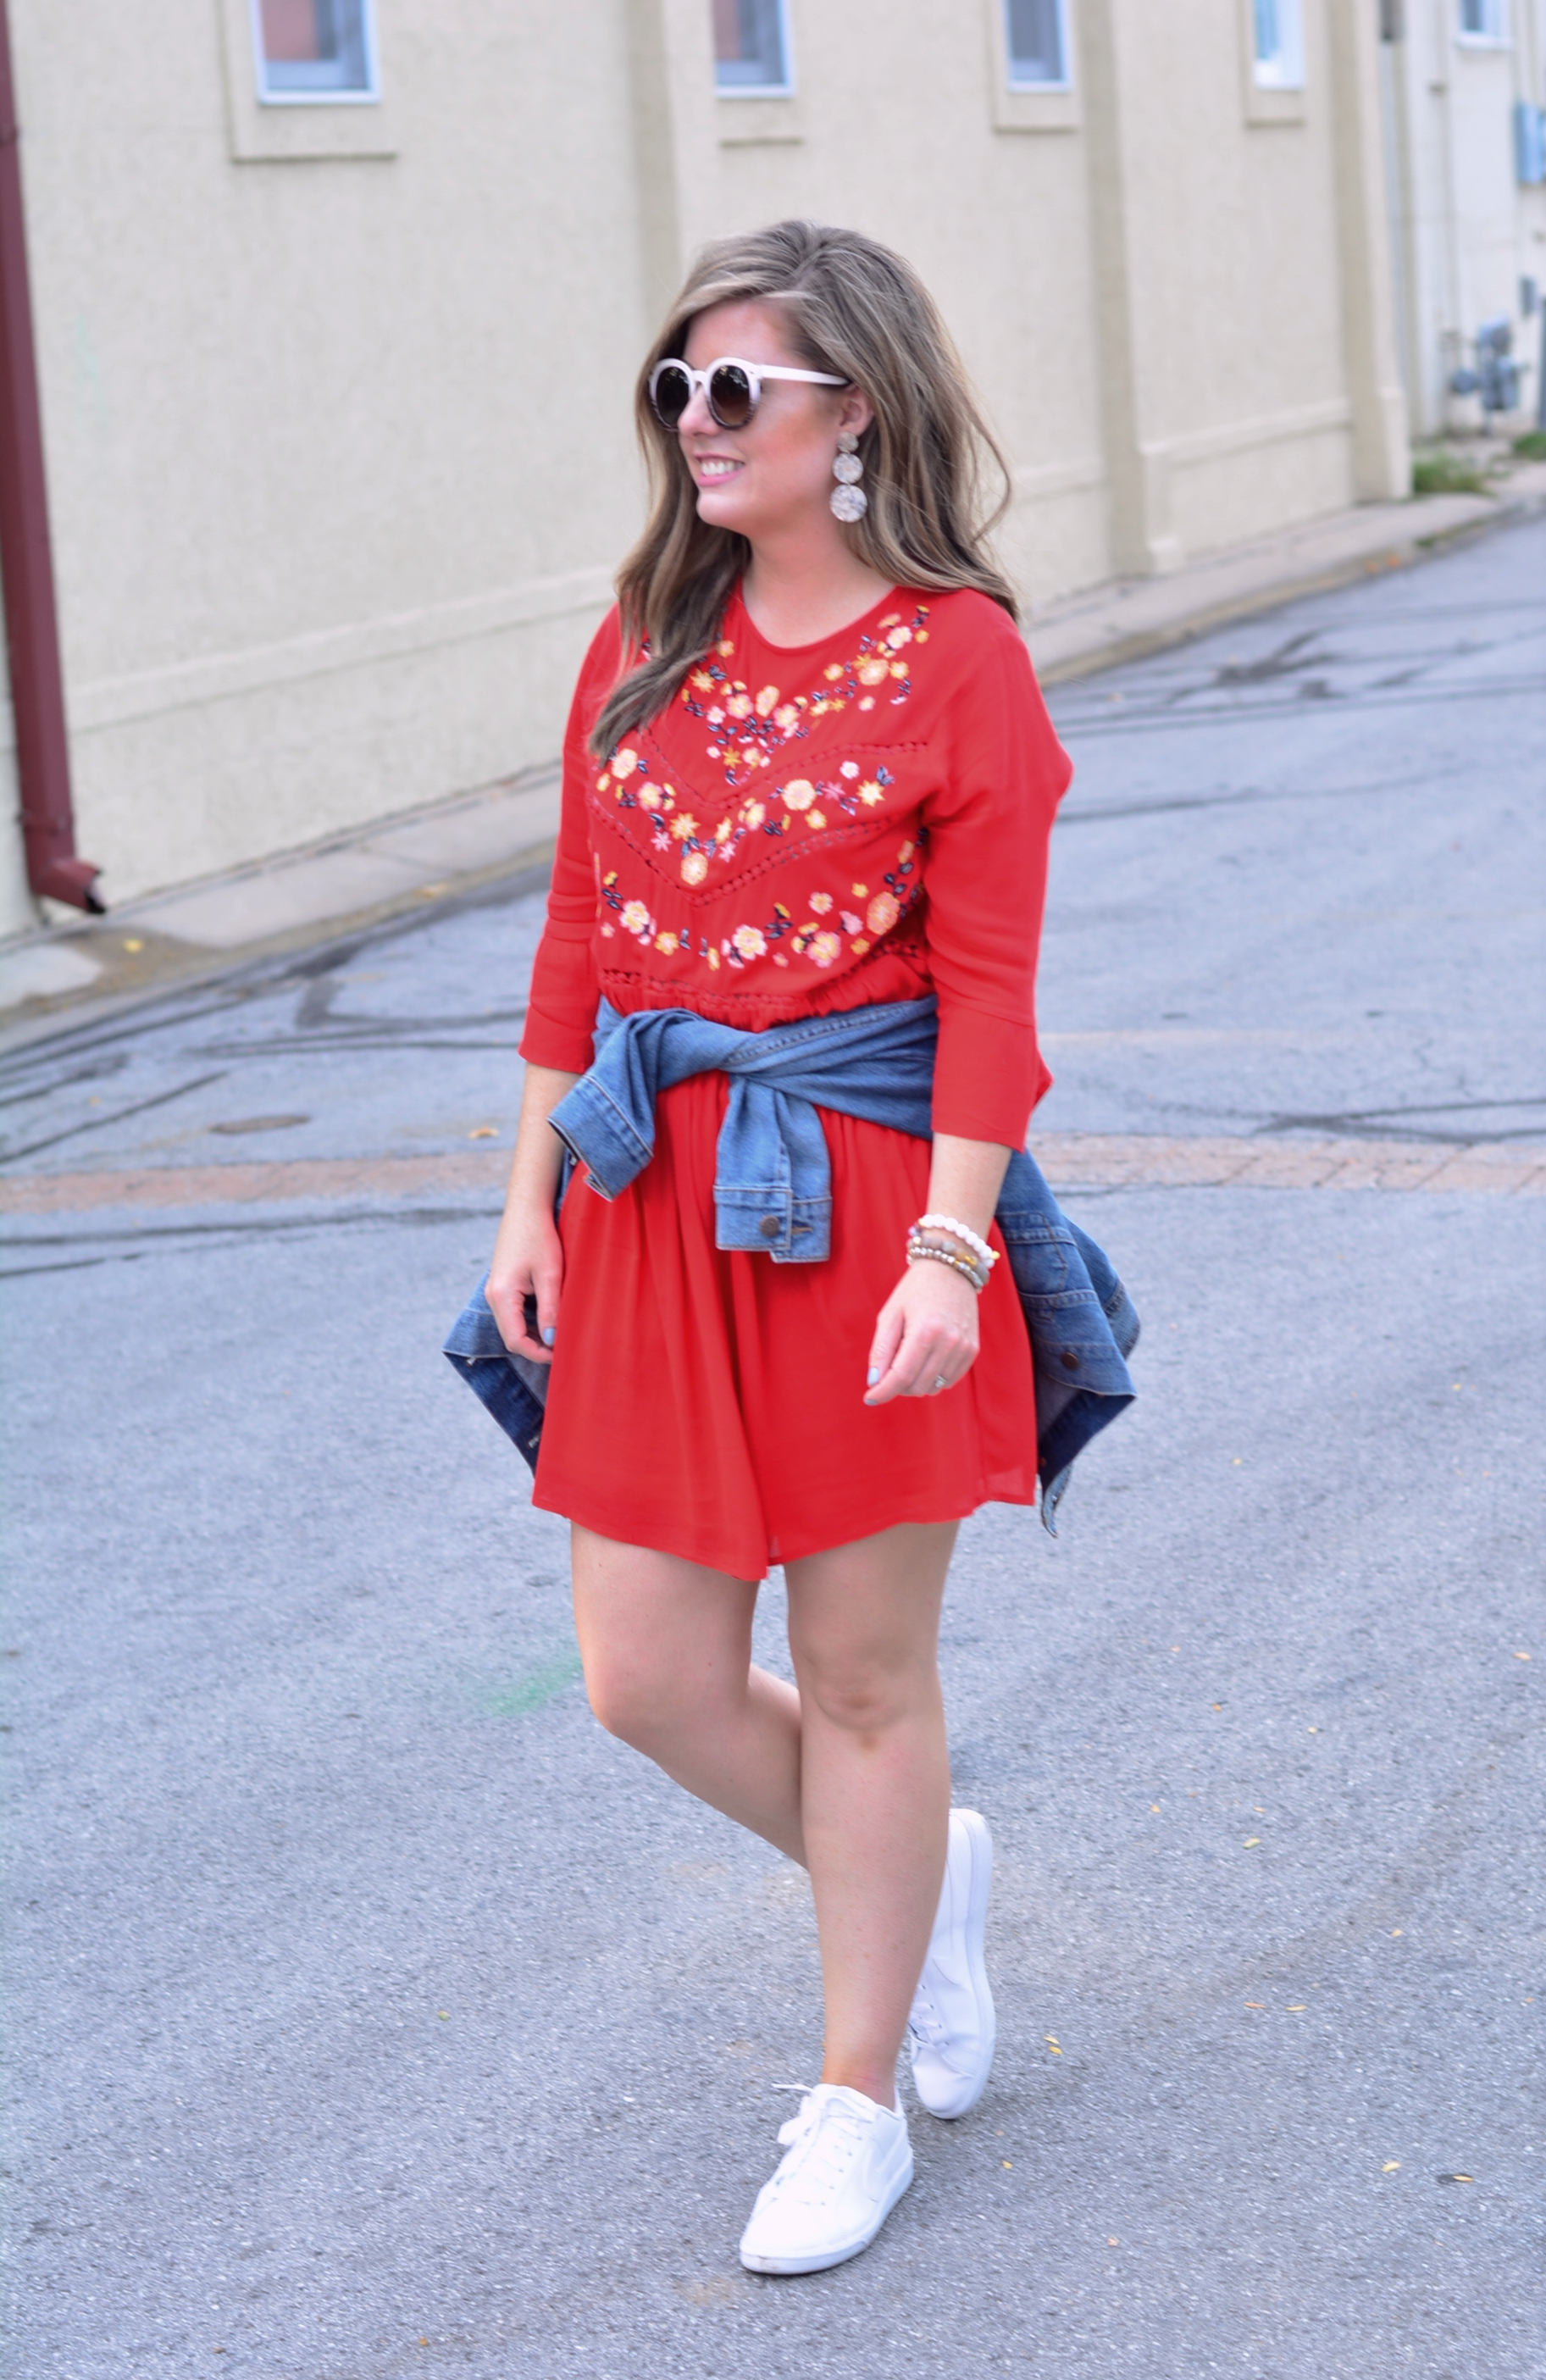 How to wear dresses with sneakers